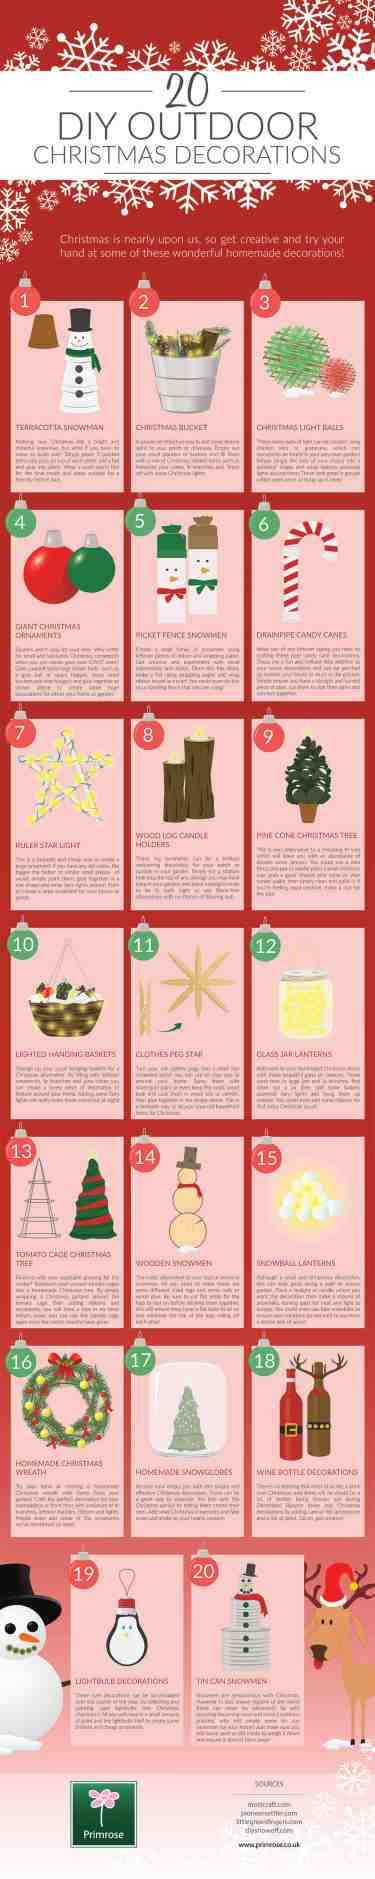 20 Diy Outdoor Christmas Decorations Visual Ly